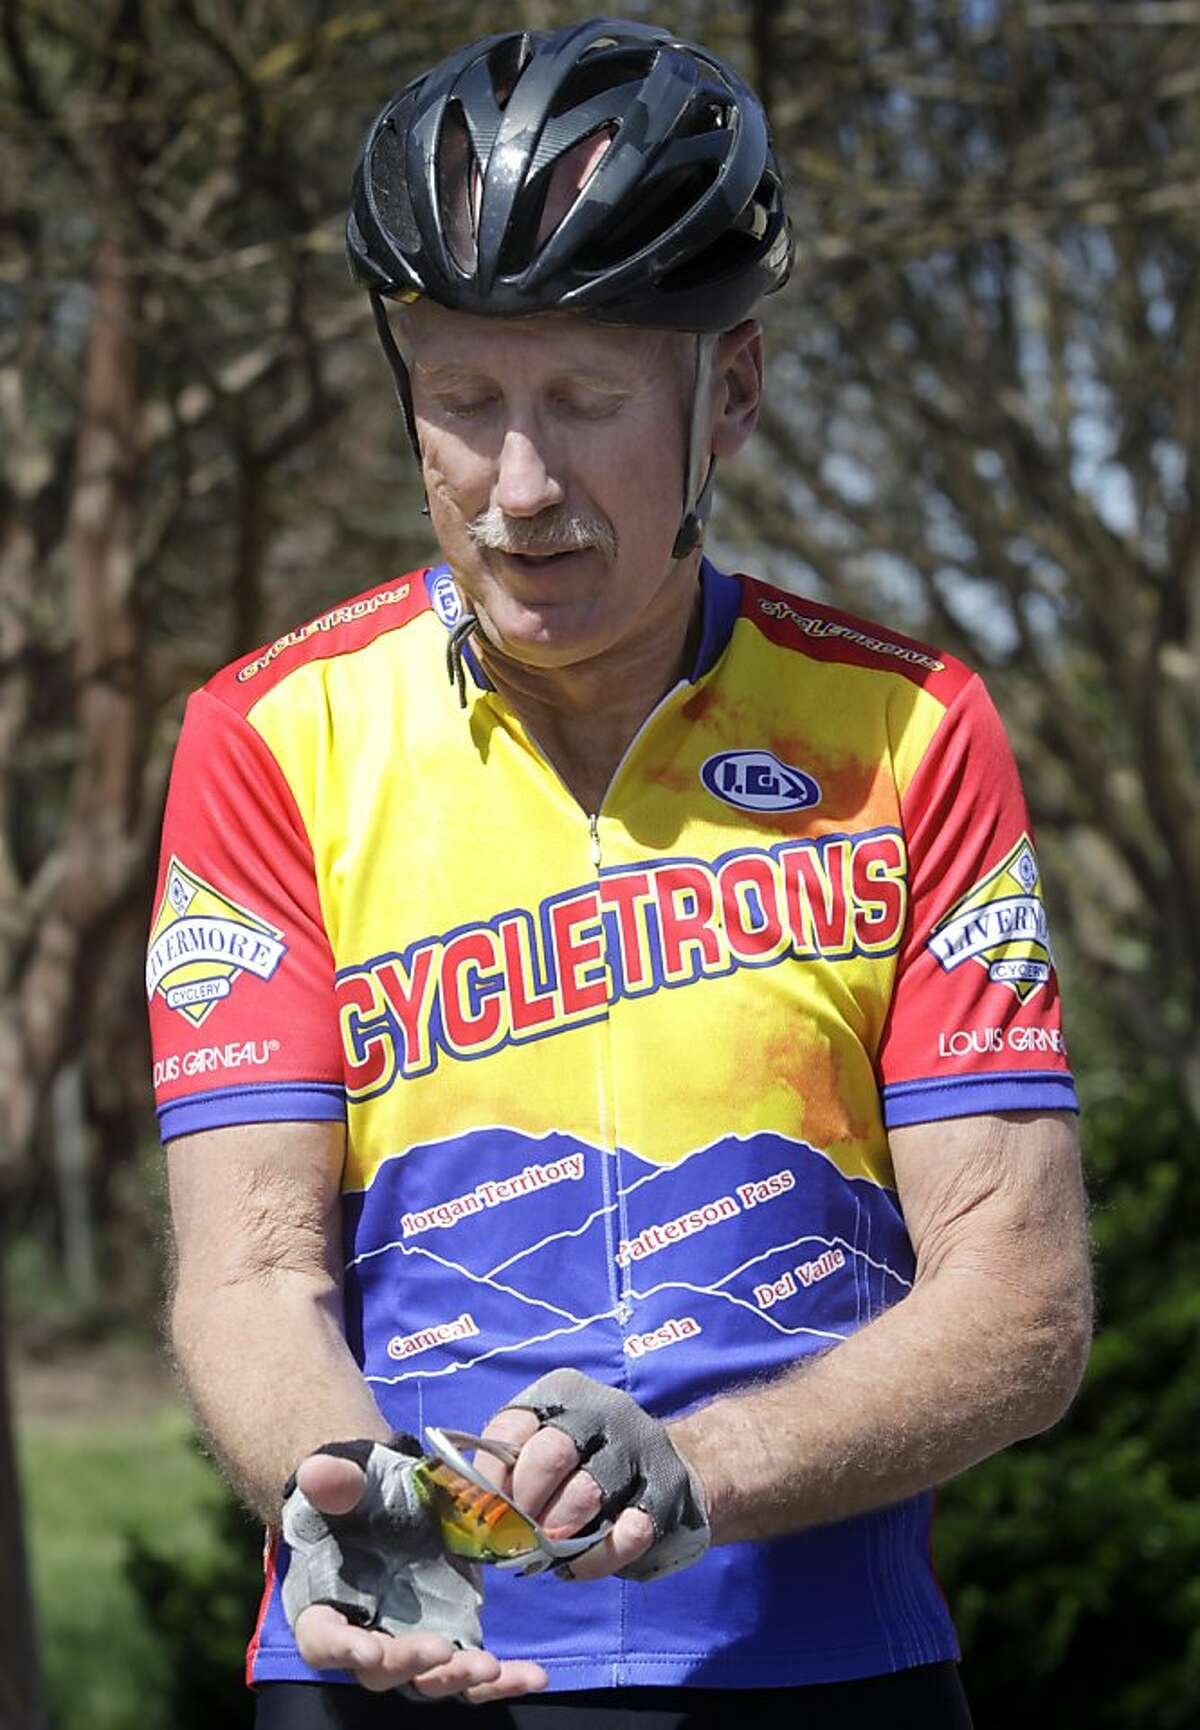 Dave Dye prepares for his daily 20-mile bike ride in French Camp, Calif. on Saturday, March 23, 2013.